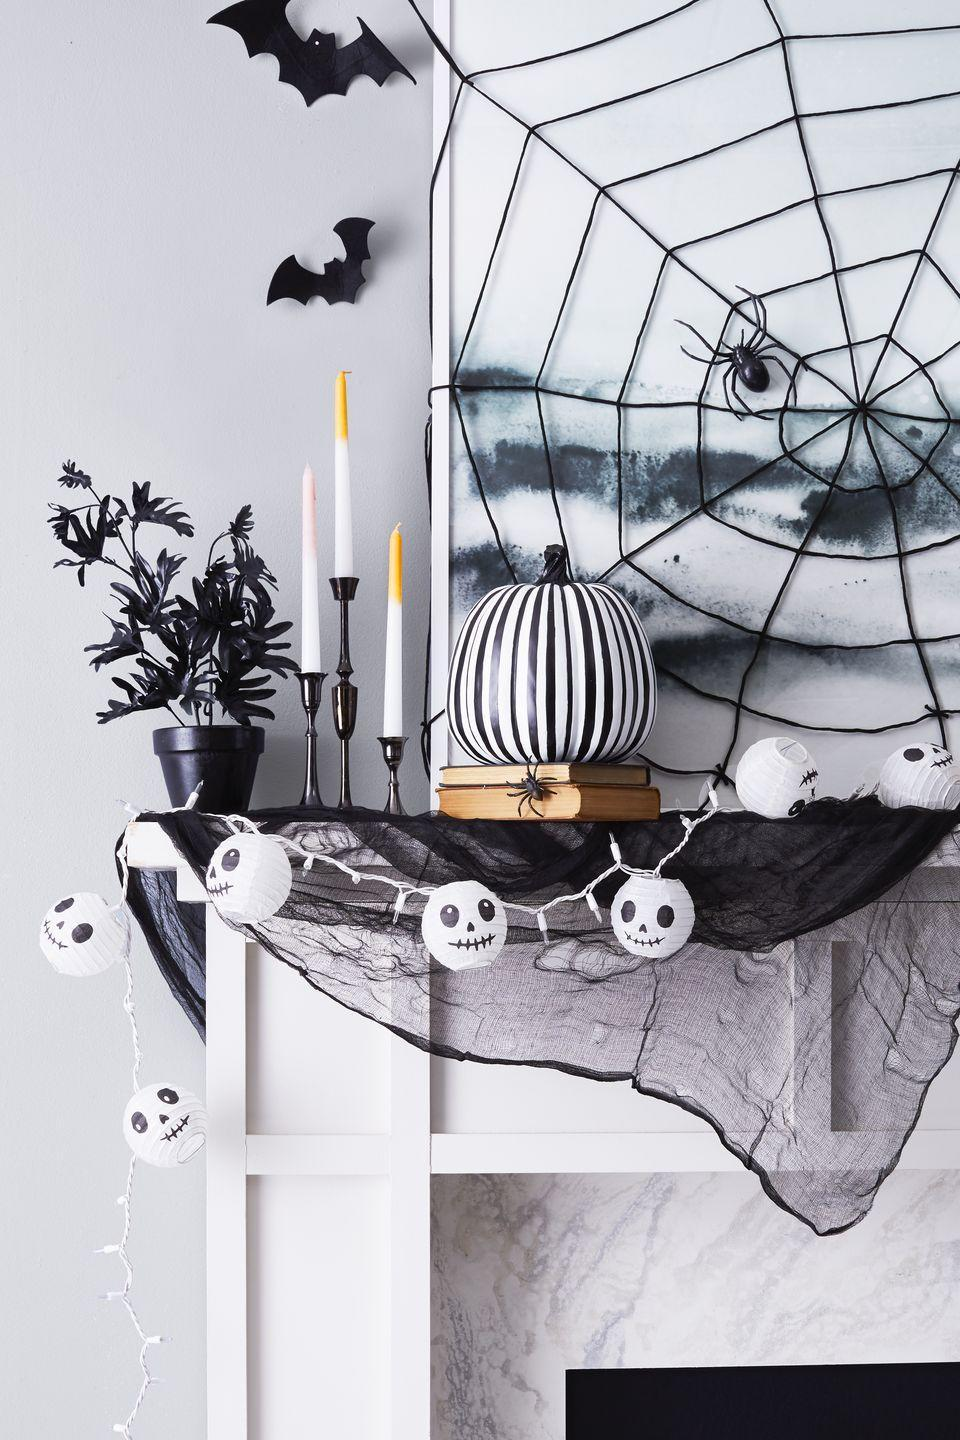 """<p>For a hauntingly easy decoration, string a creepy crawling cobweb over any piece of artwork you have hanging on the wall. </p><p><strong>RELATED</strong>: <a href=""""https://www.goodhousekeeping.com/home/decorating-ideas/g2716/fall-decorations/"""" rel=""""nofollow noopener"""" target=""""_blank"""" data-ylk=""""slk:35 DIY Fall Decorations That'll Give Your Home a Warm and Cozy Feel"""" class=""""link rapid-noclick-resp"""">35 DIY Fall Decorations That'll Give Your Home a Warm and Cozy Feel</a></p>"""